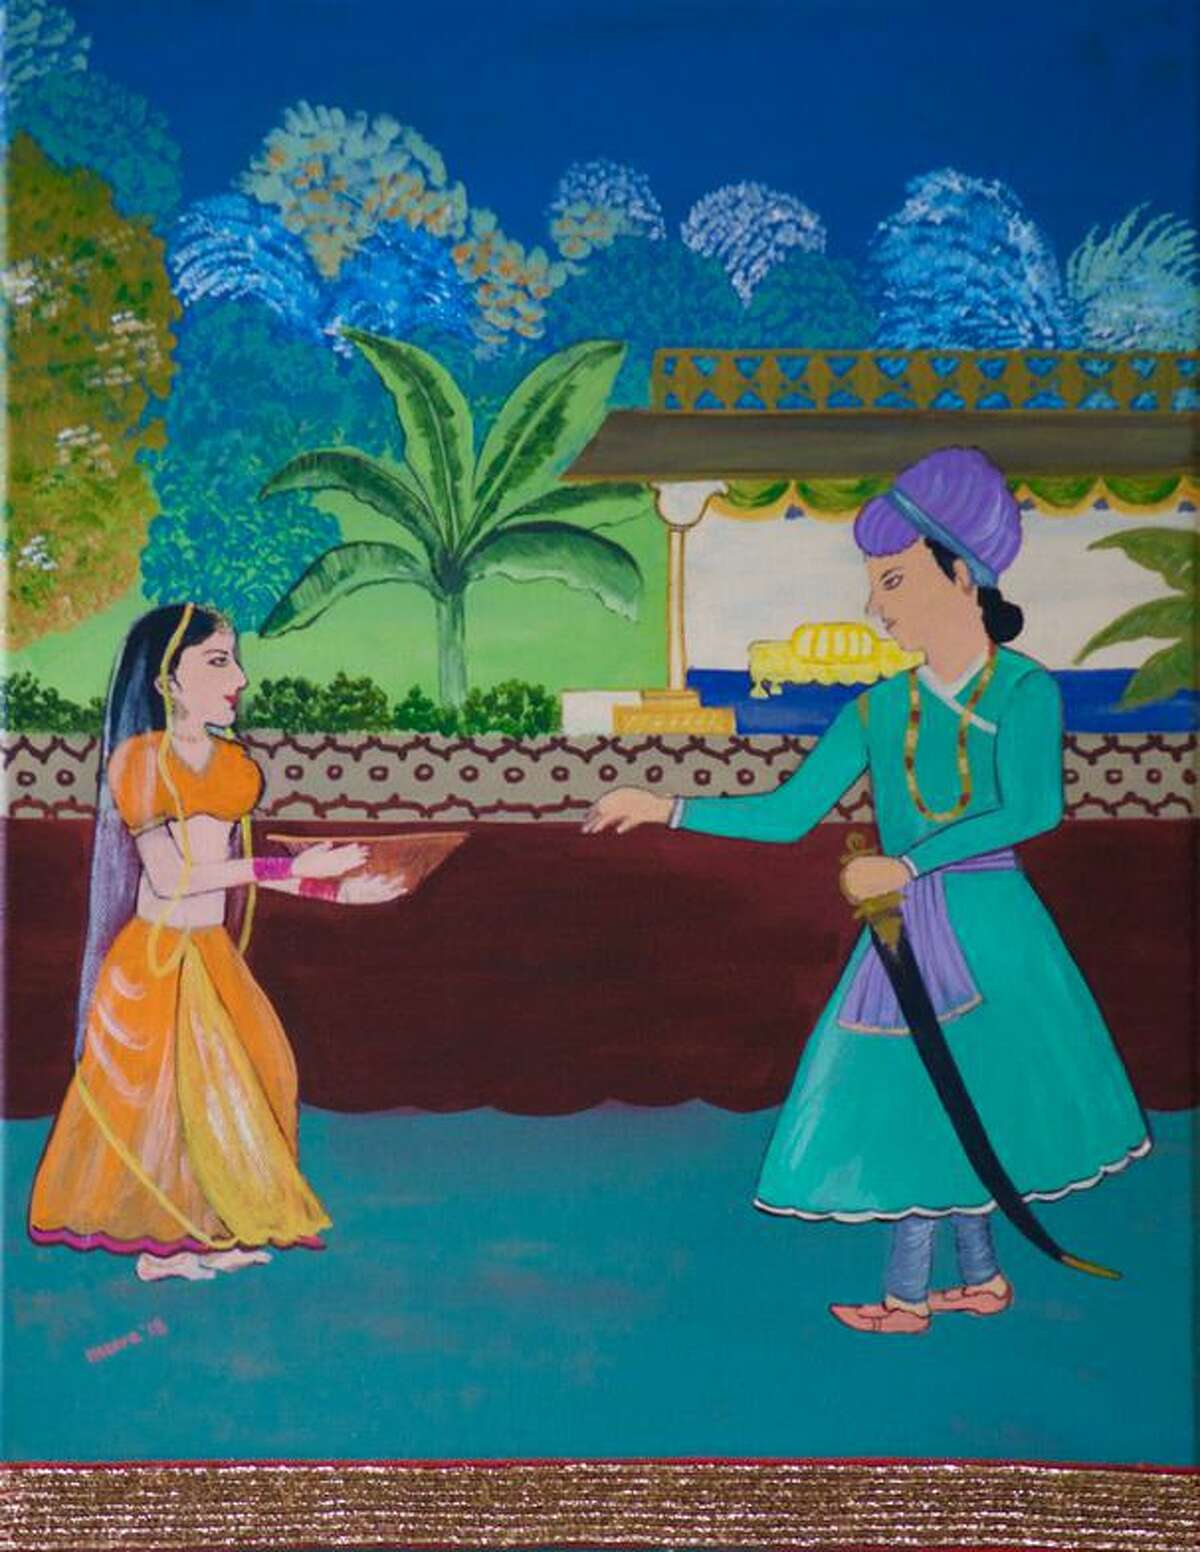 """""""Blessings Before Battle,"""" a painting by Meera Agarwal, is part of the """"Junctures & Constellations"""" exhibit of India and North America Contemporary Art from India and the Diaspora presented by The India Cultural Center of Greenwich & The Greenwich Arts Council. It is on display through Feb. 22."""